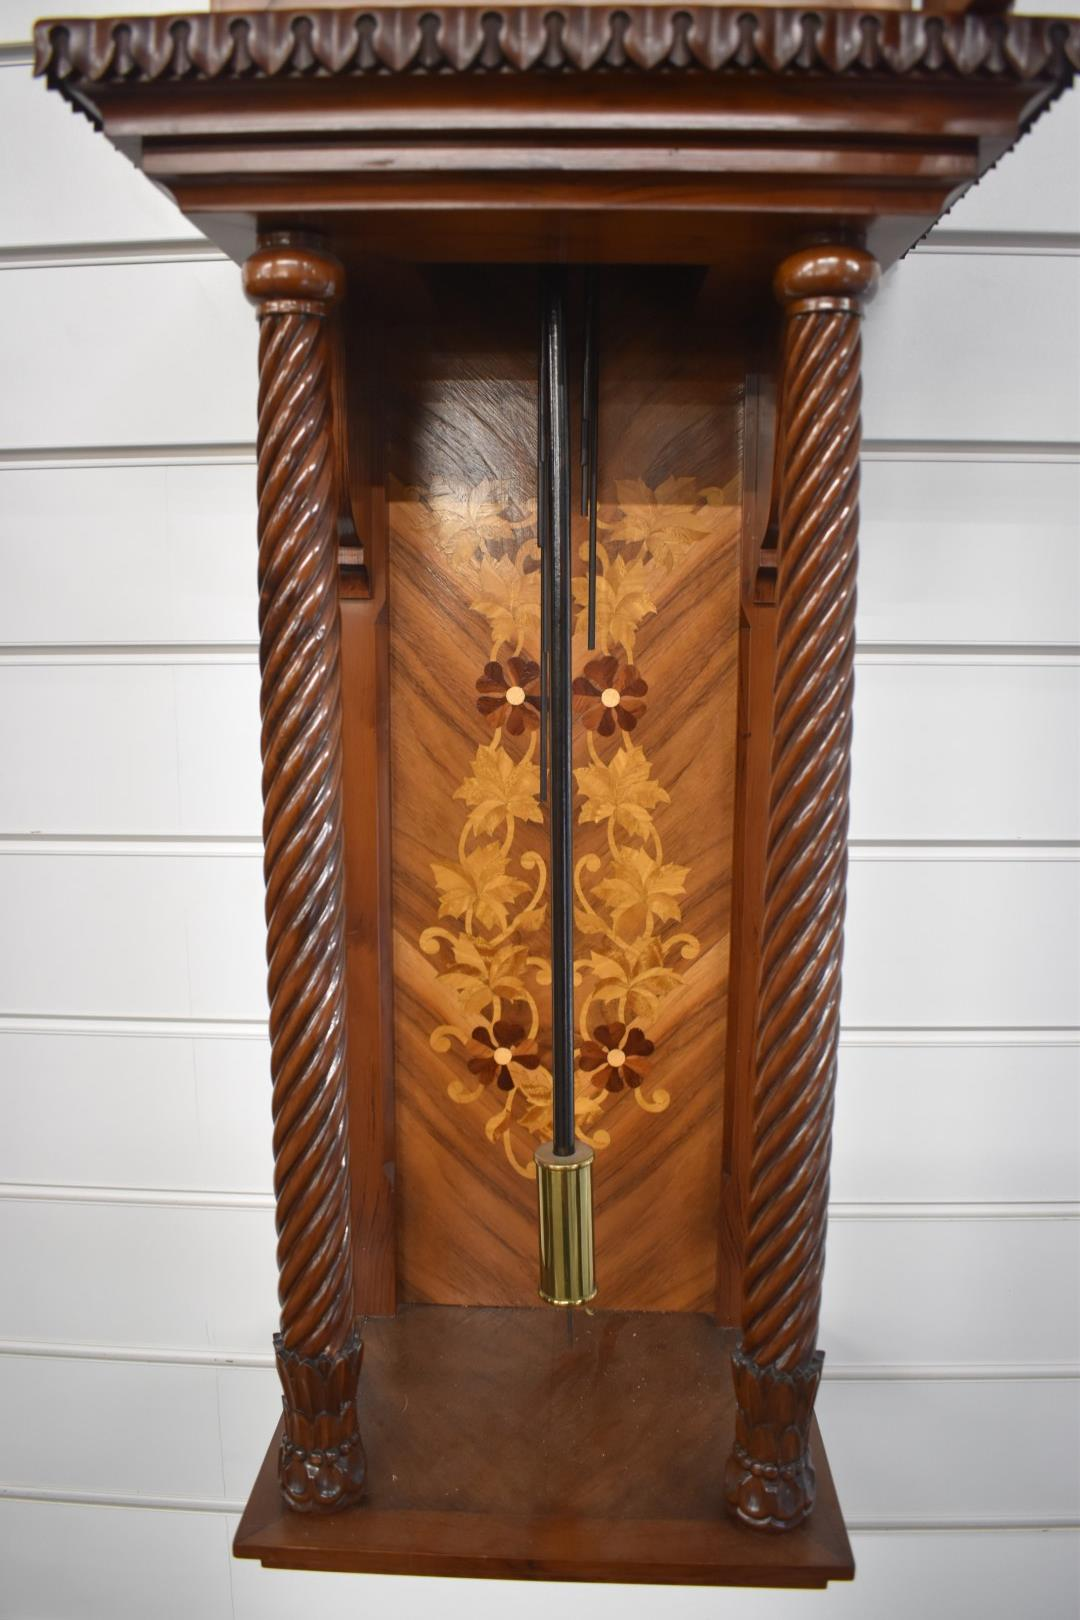 Late 20thC German pillar wall clock with three train chiming movement, carvedmarquetry inlaid - Image 3 of 4